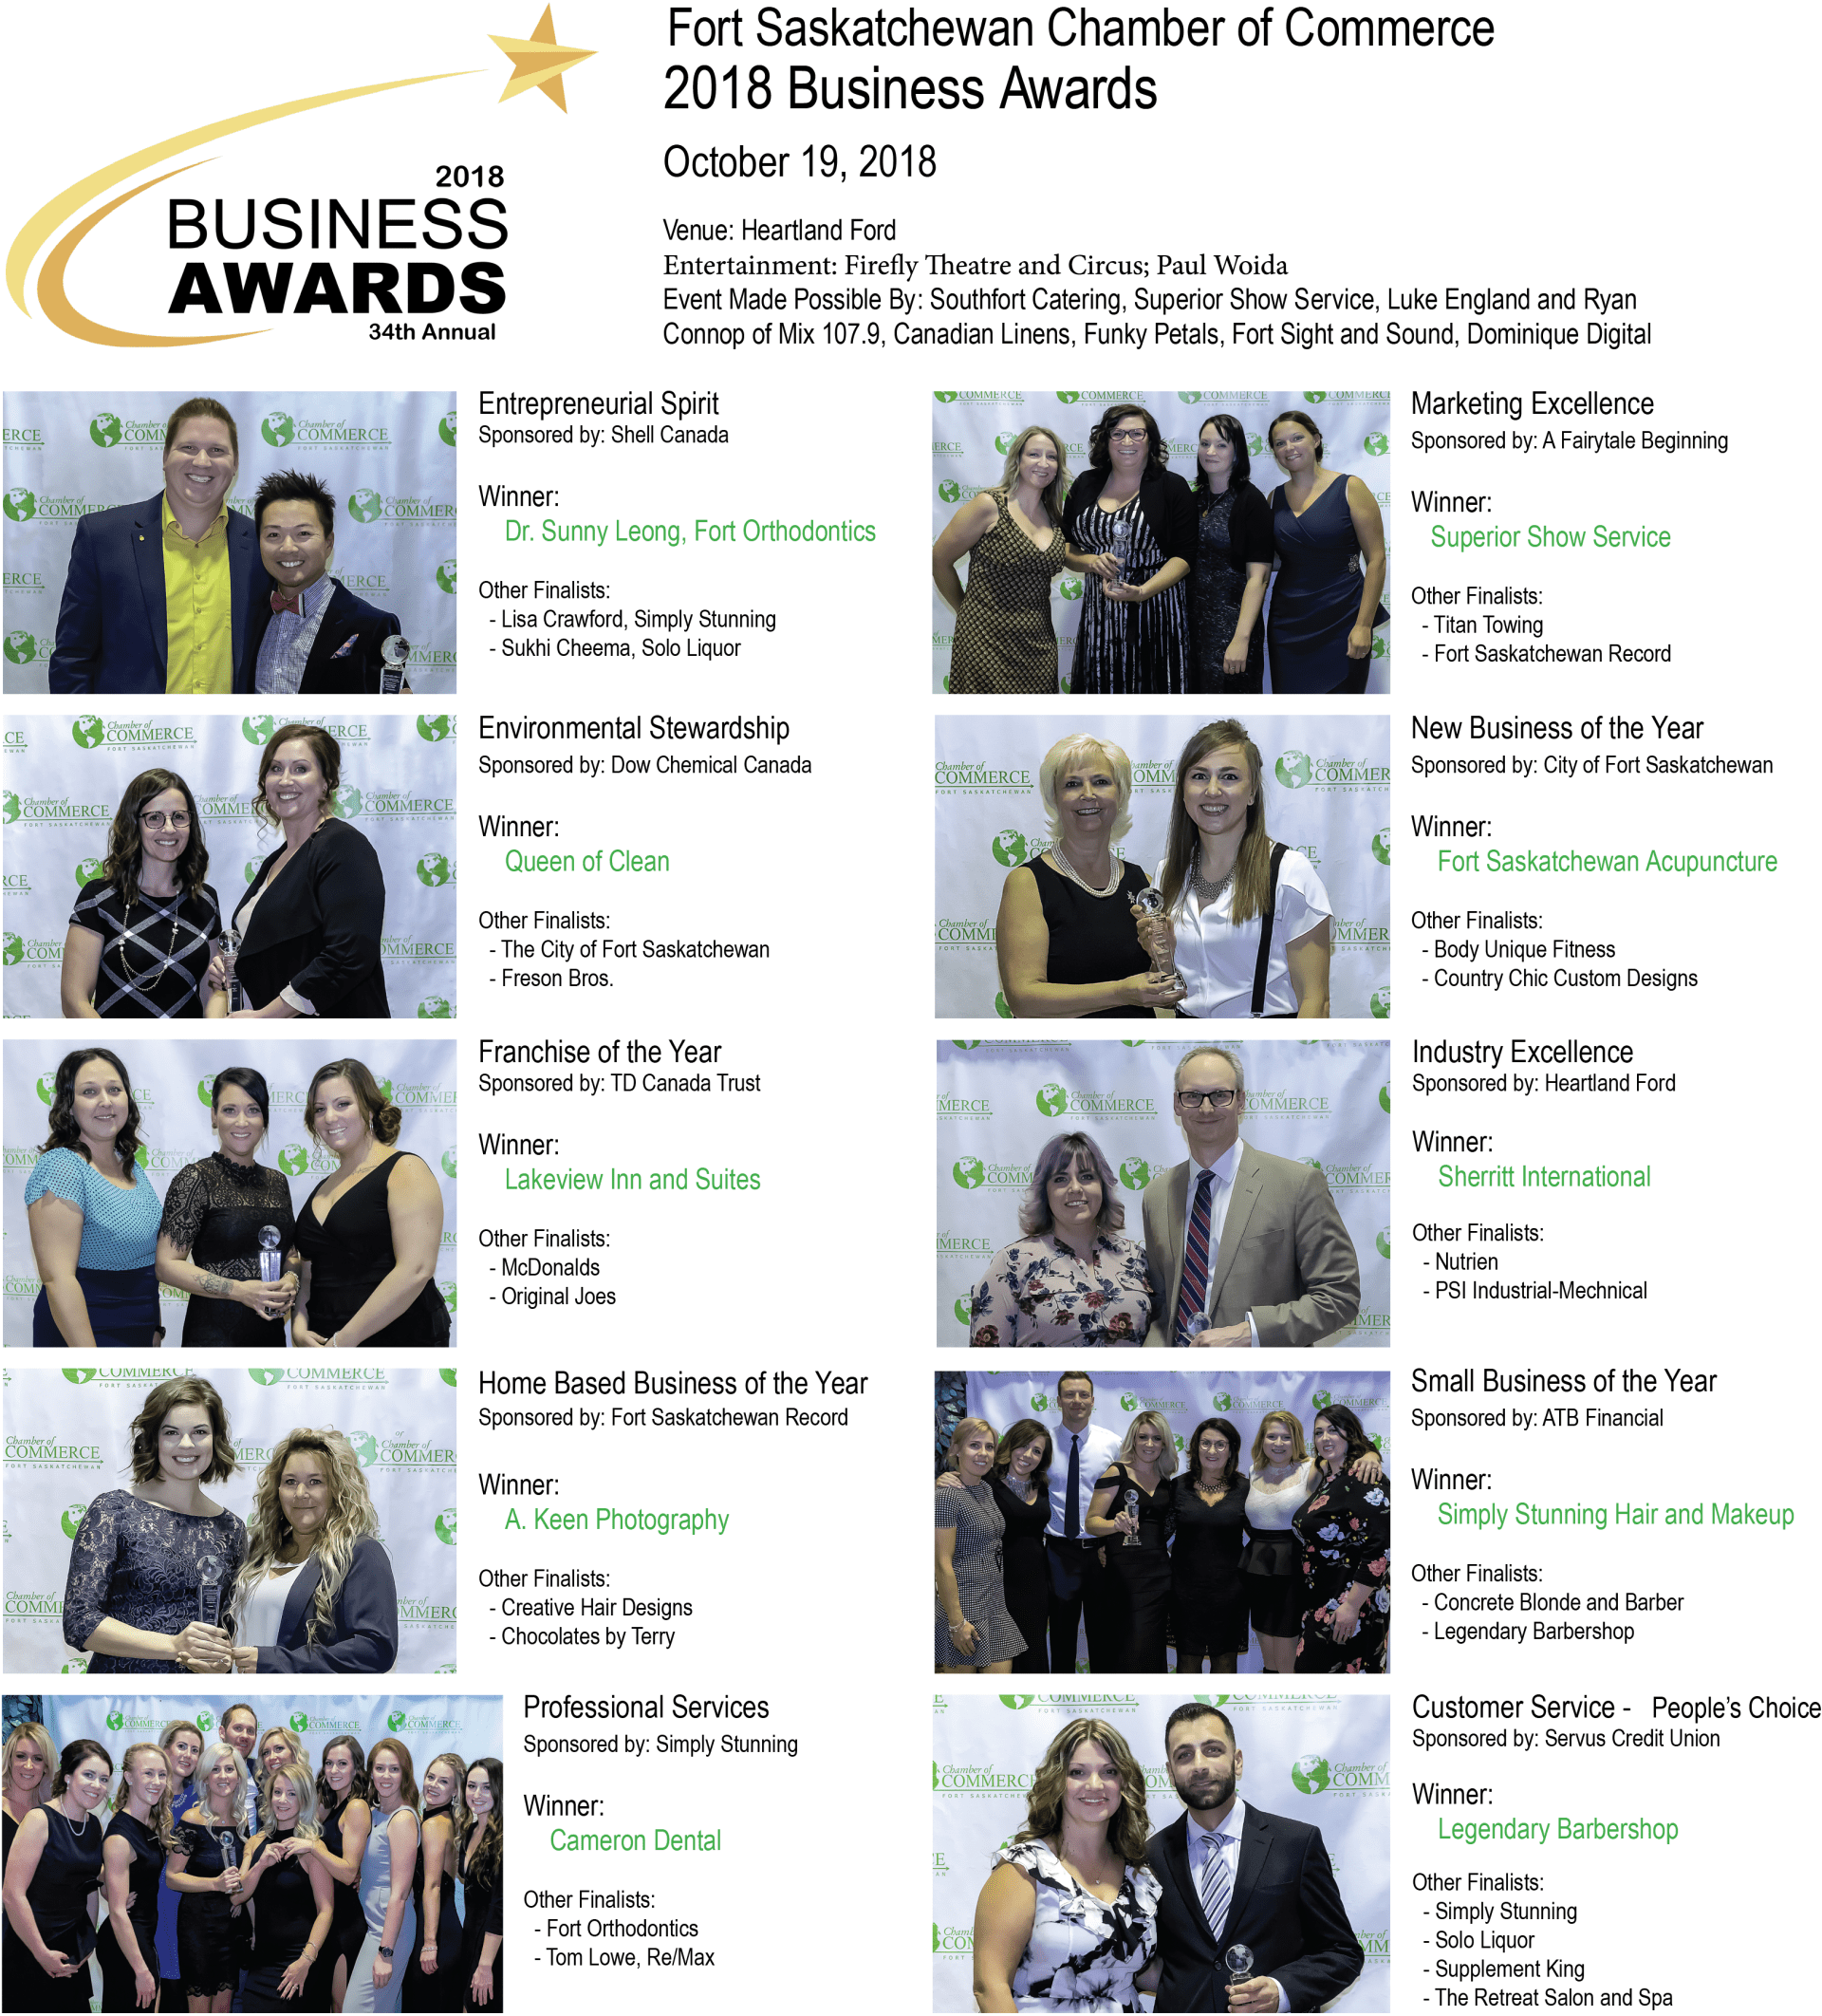 BusinessAwardsFortRecord_02(1)-w1920.png